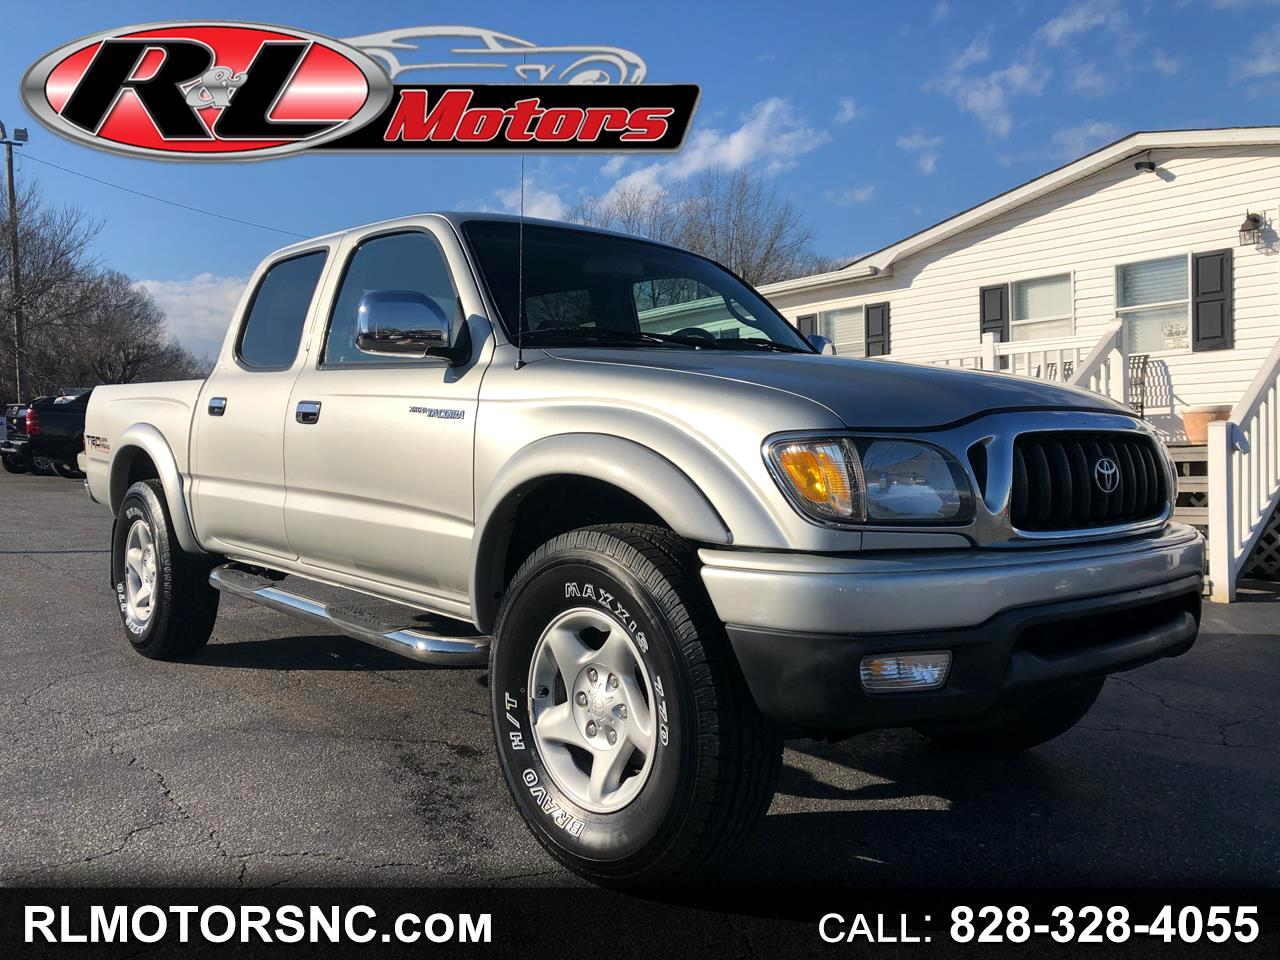 2002 Toyota Tacoma SR5 Double Cab 5' Bed V6 4x4 AT (Natl)